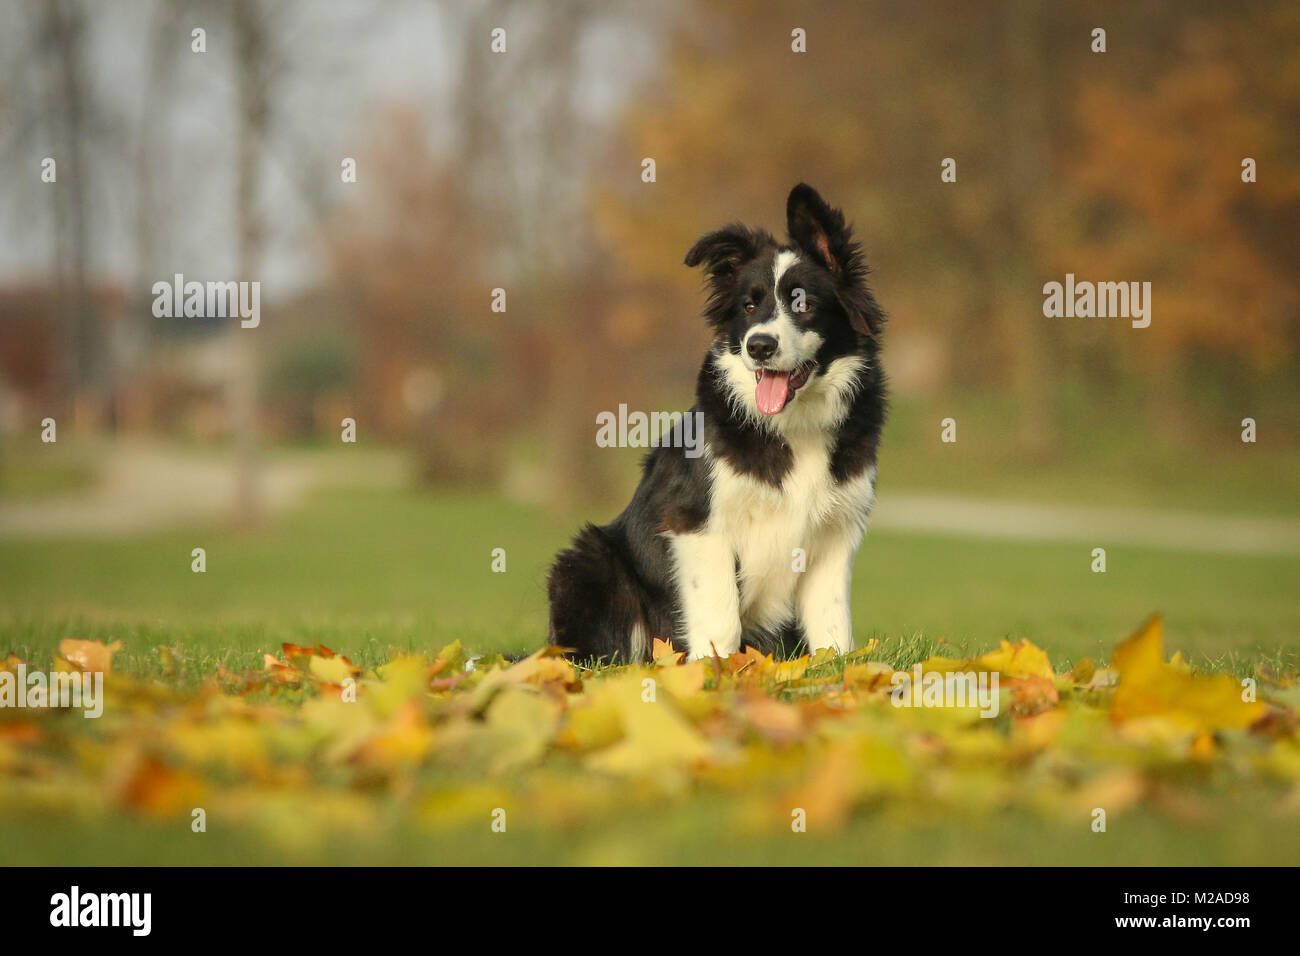 A picture of the young border collie puppy enjoying the walk in the nature. - Stock Image